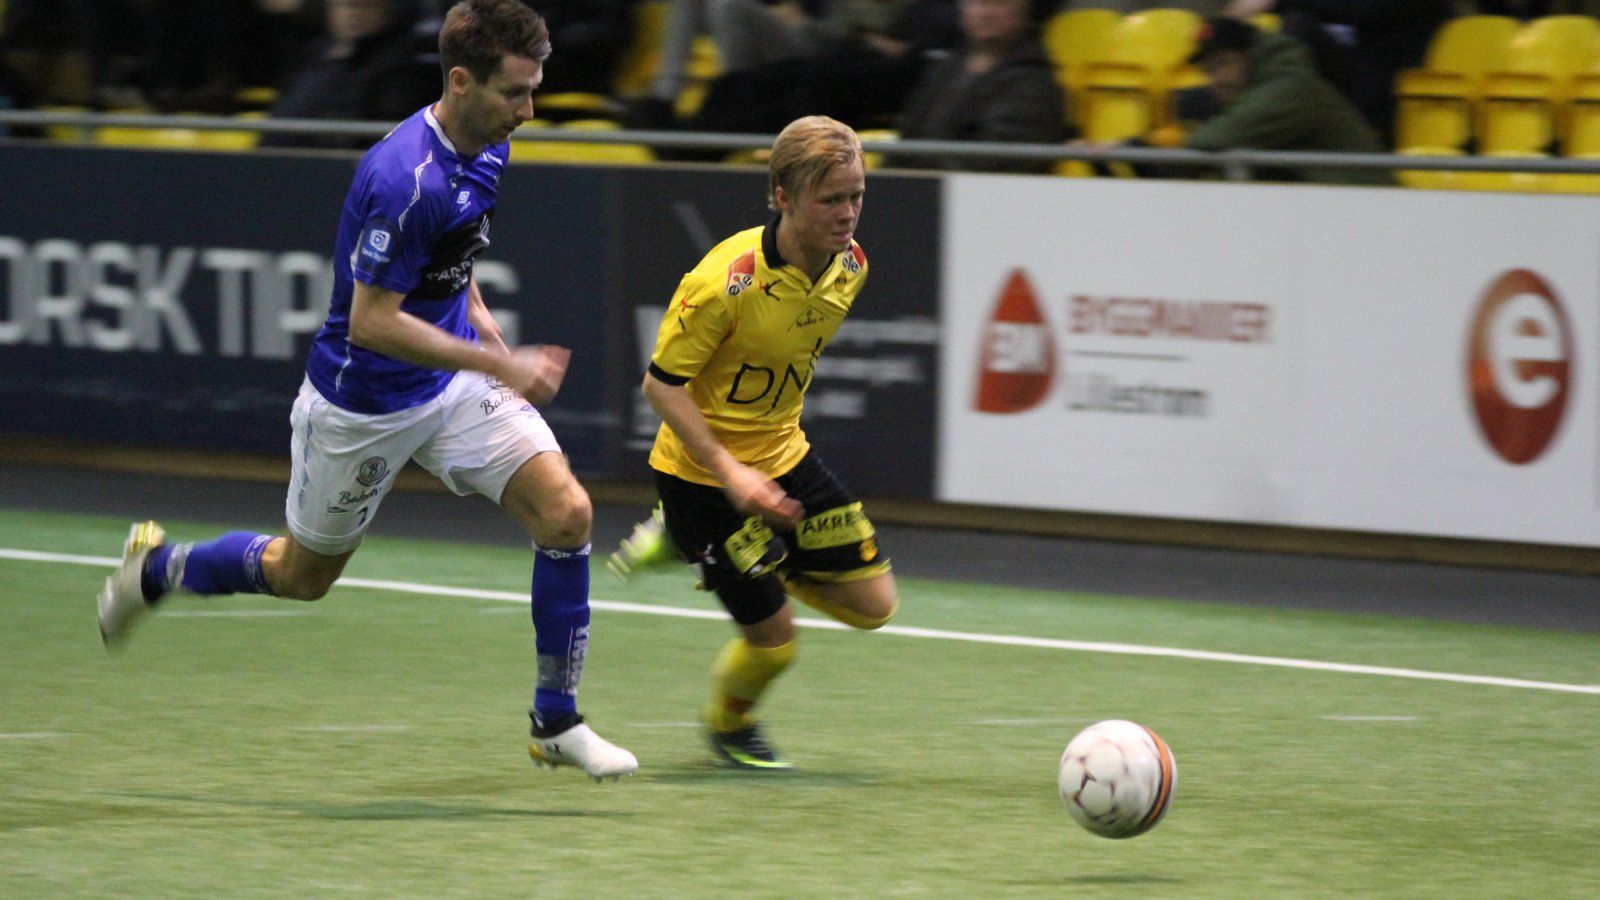 Petter Mathias Olsen mot Start